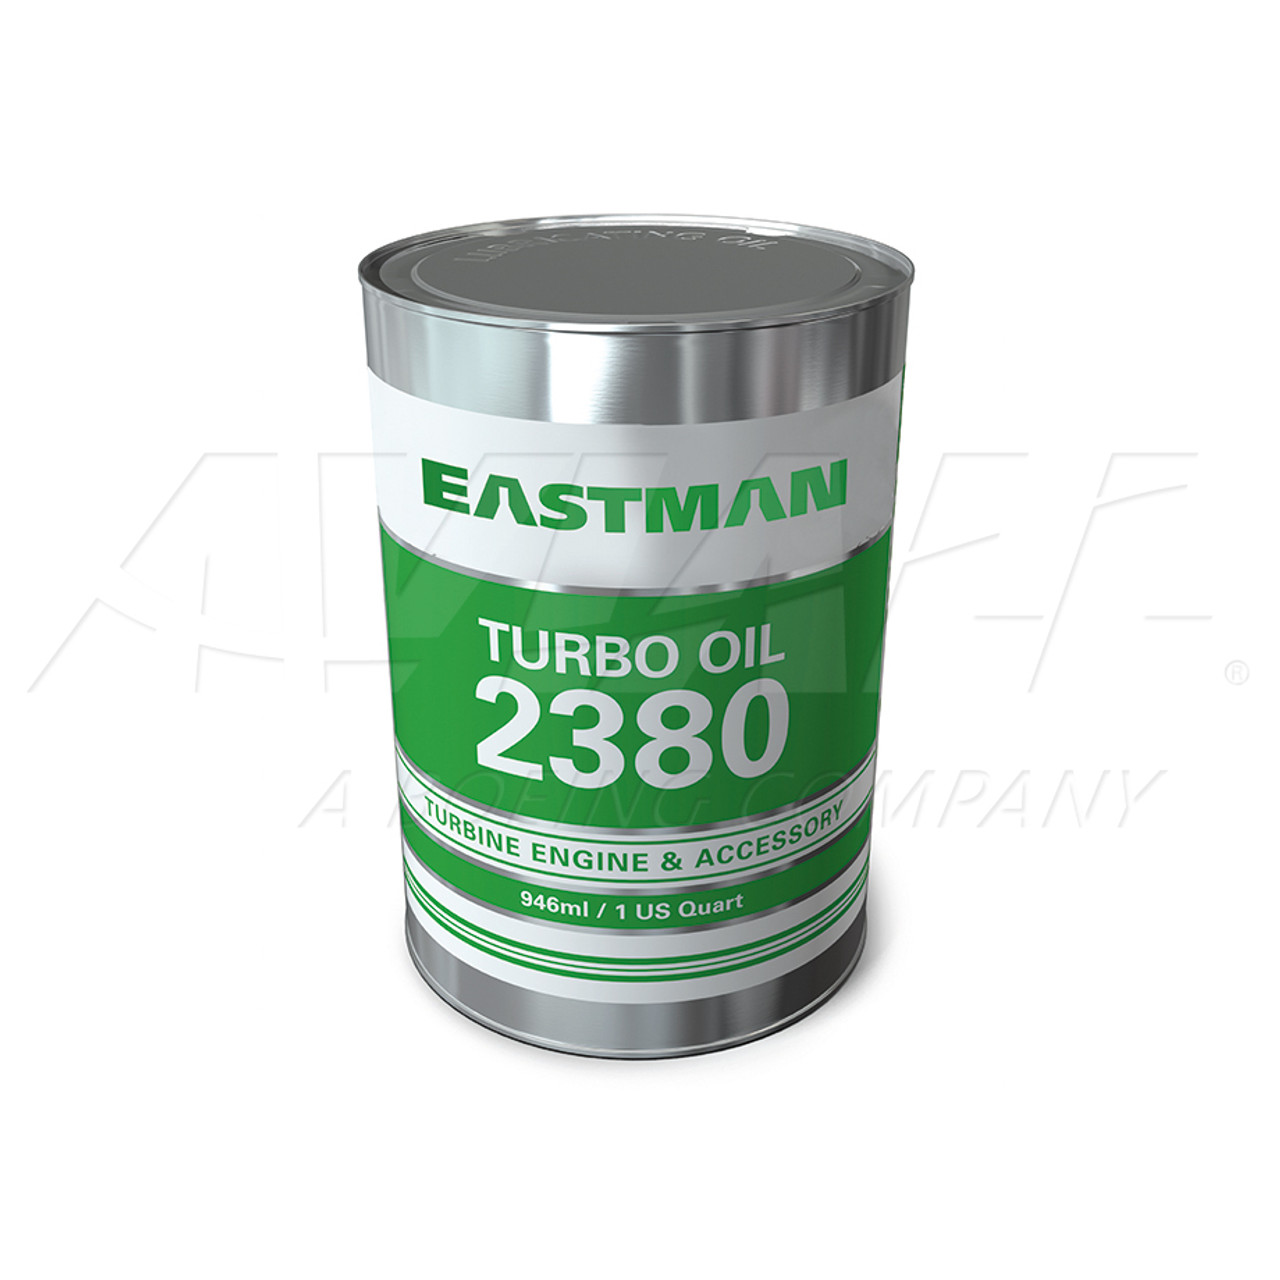 Eastman 2380 Turbine Engine Oil - 24 Quart Case